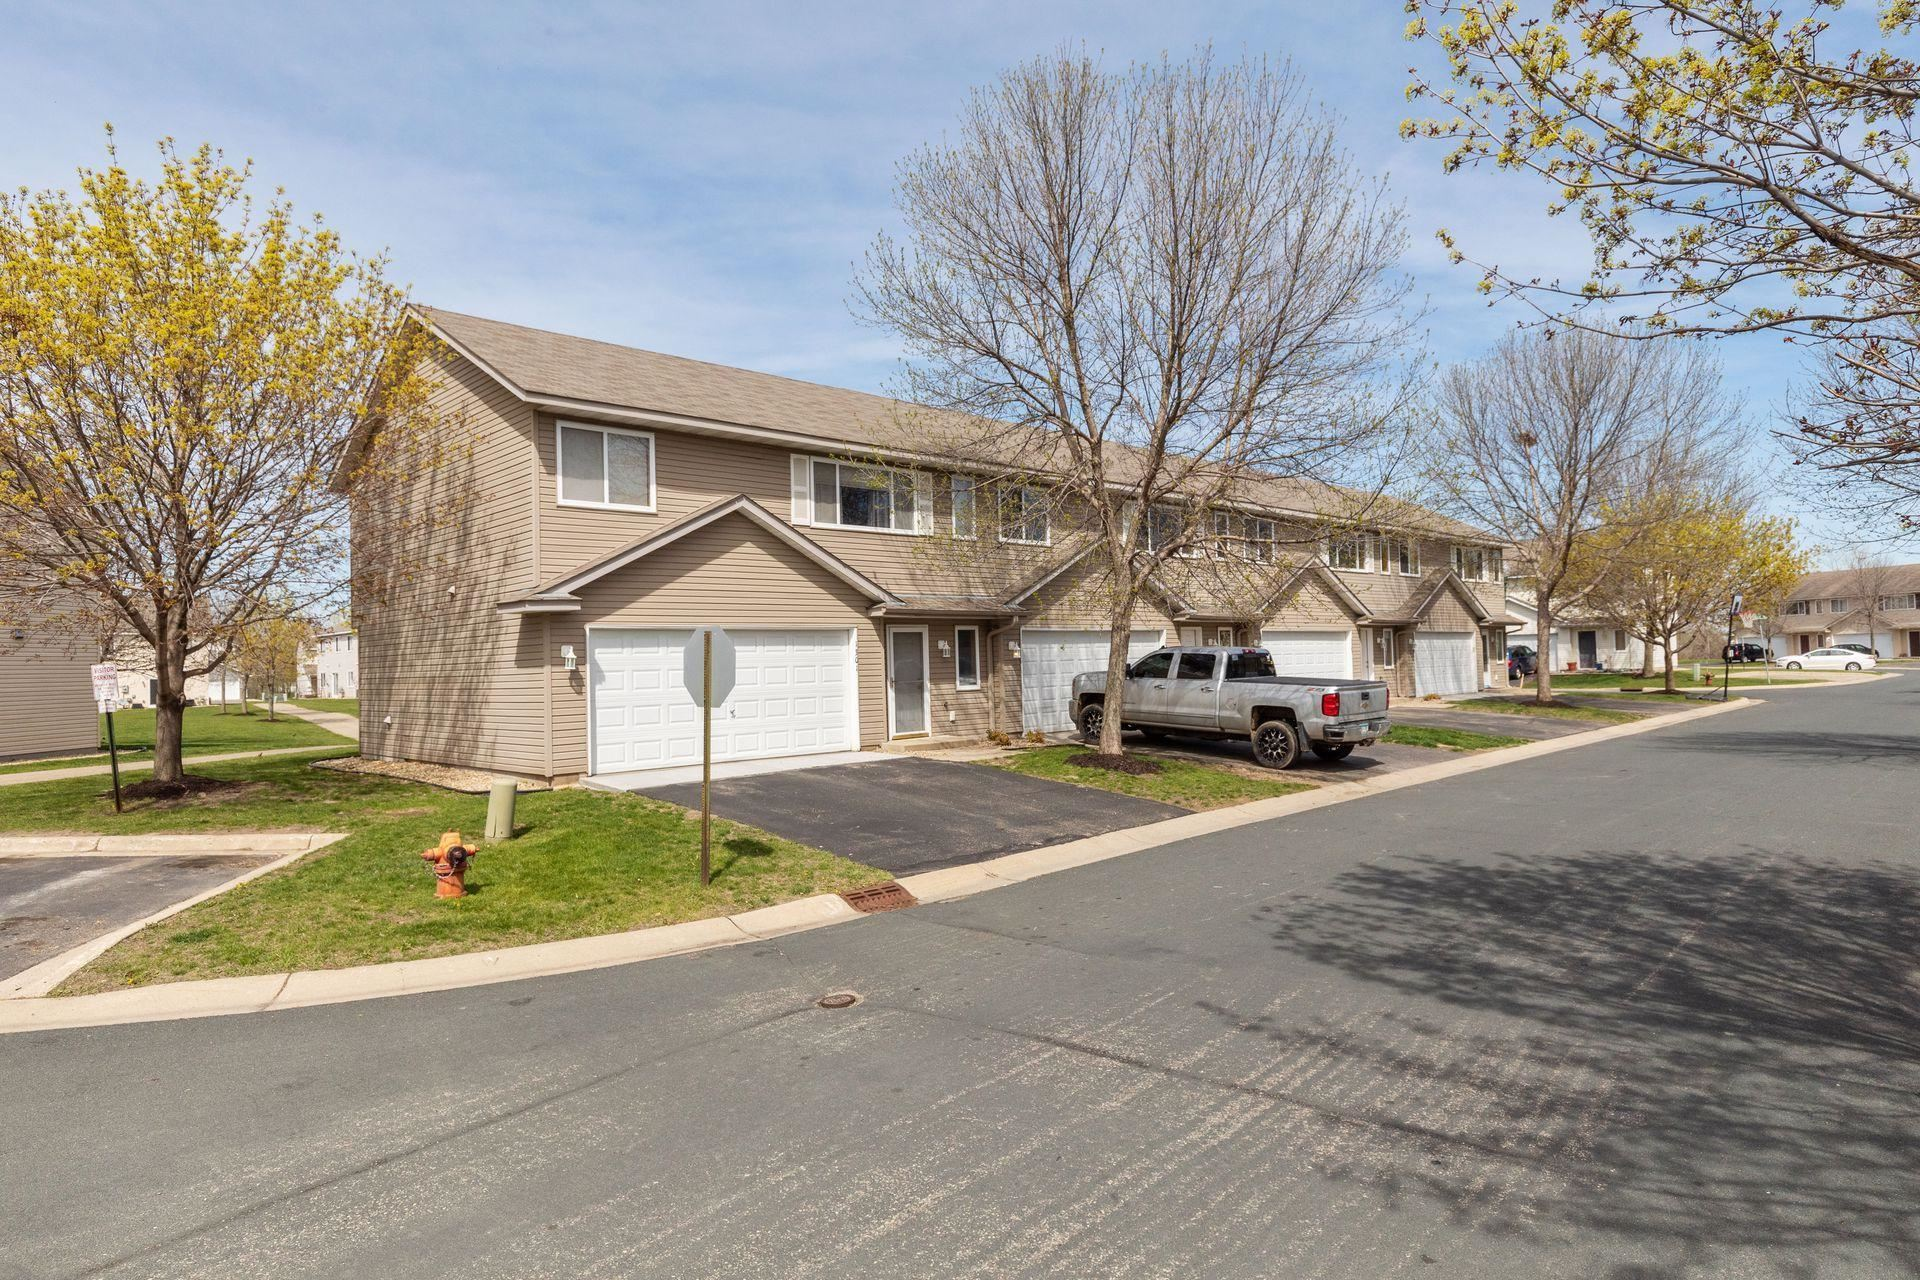 Photo of 1305 Willow Trail, Farmington, MN 55024 (MLS # 5717097)